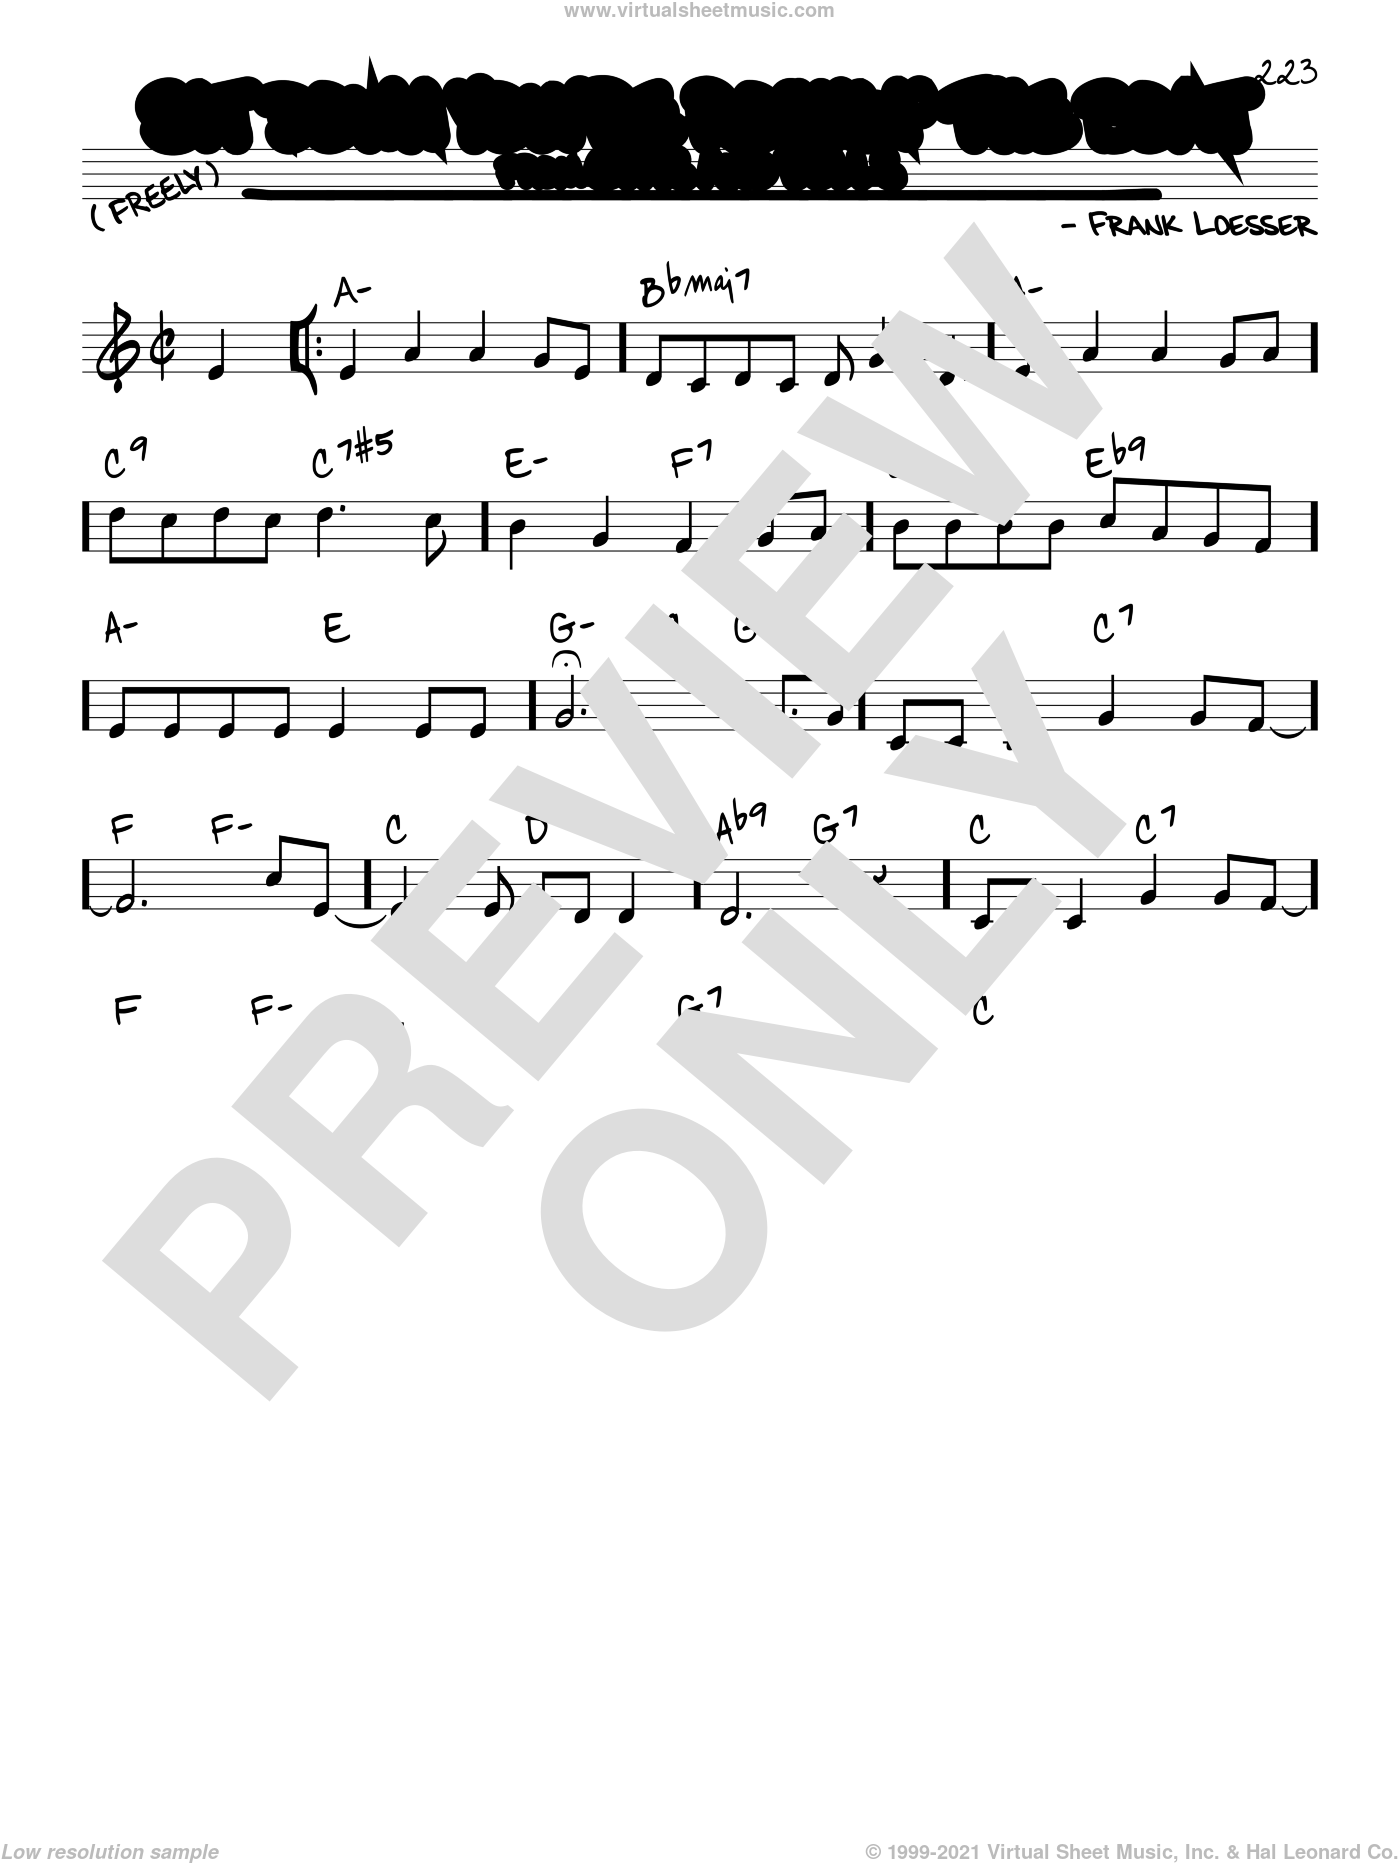 Sit Down You're Rockin' The Boat sheet music for voice and other instruments (real book) by Frank Loesser, intermediate skill level